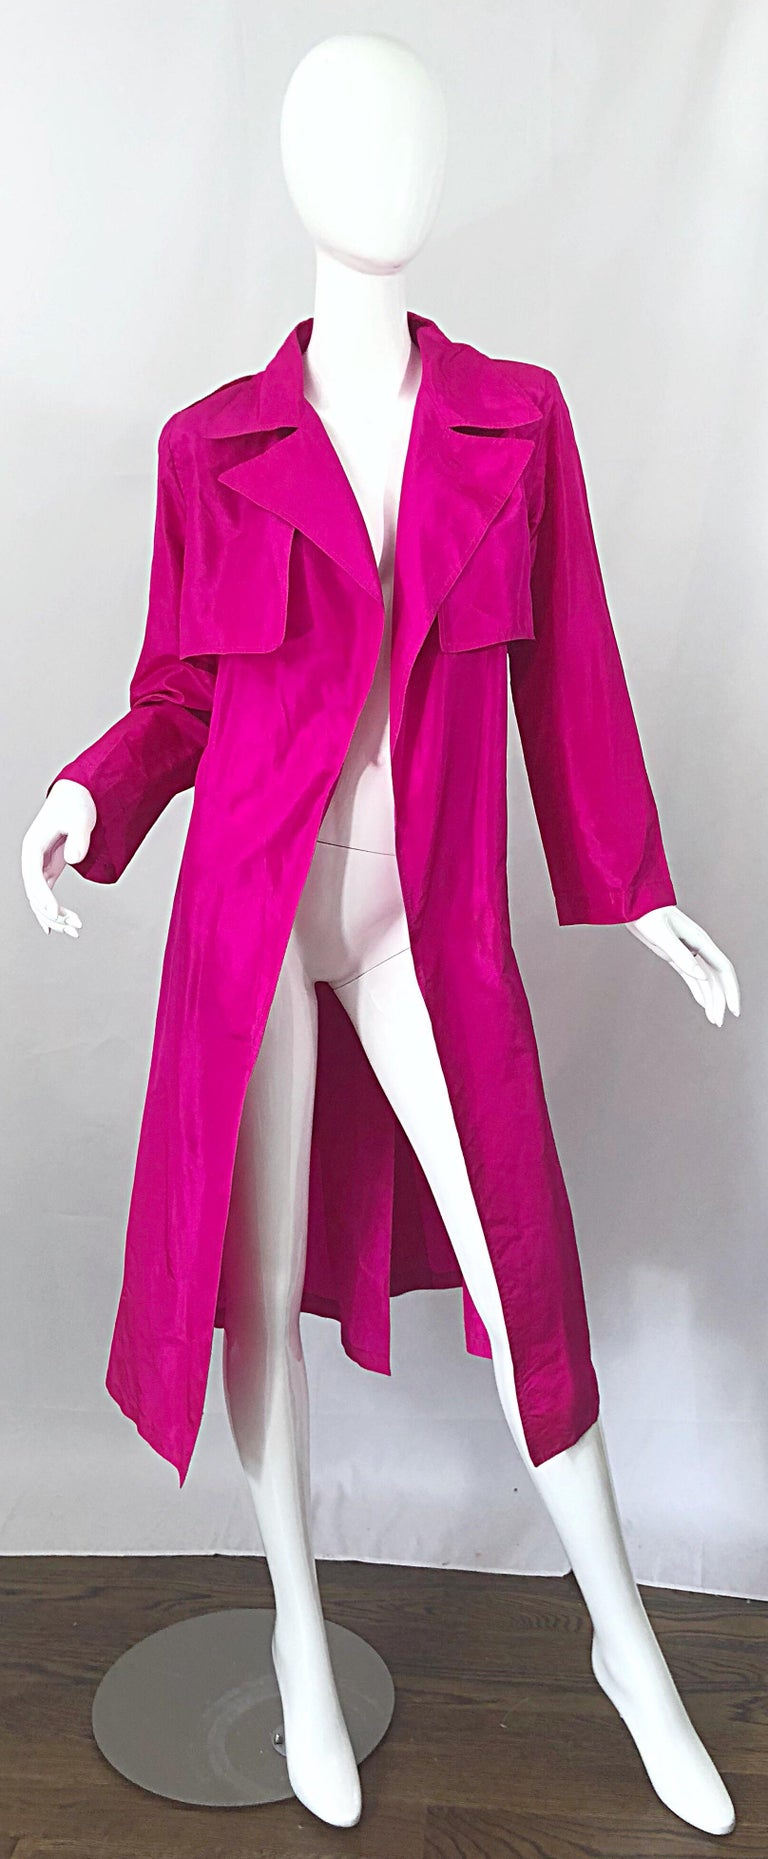 Vintage Vicky Tiel Couture 80s Hot Pink Fuchsia Silk 1980s Trecnch Jacket Dress For Sale 4